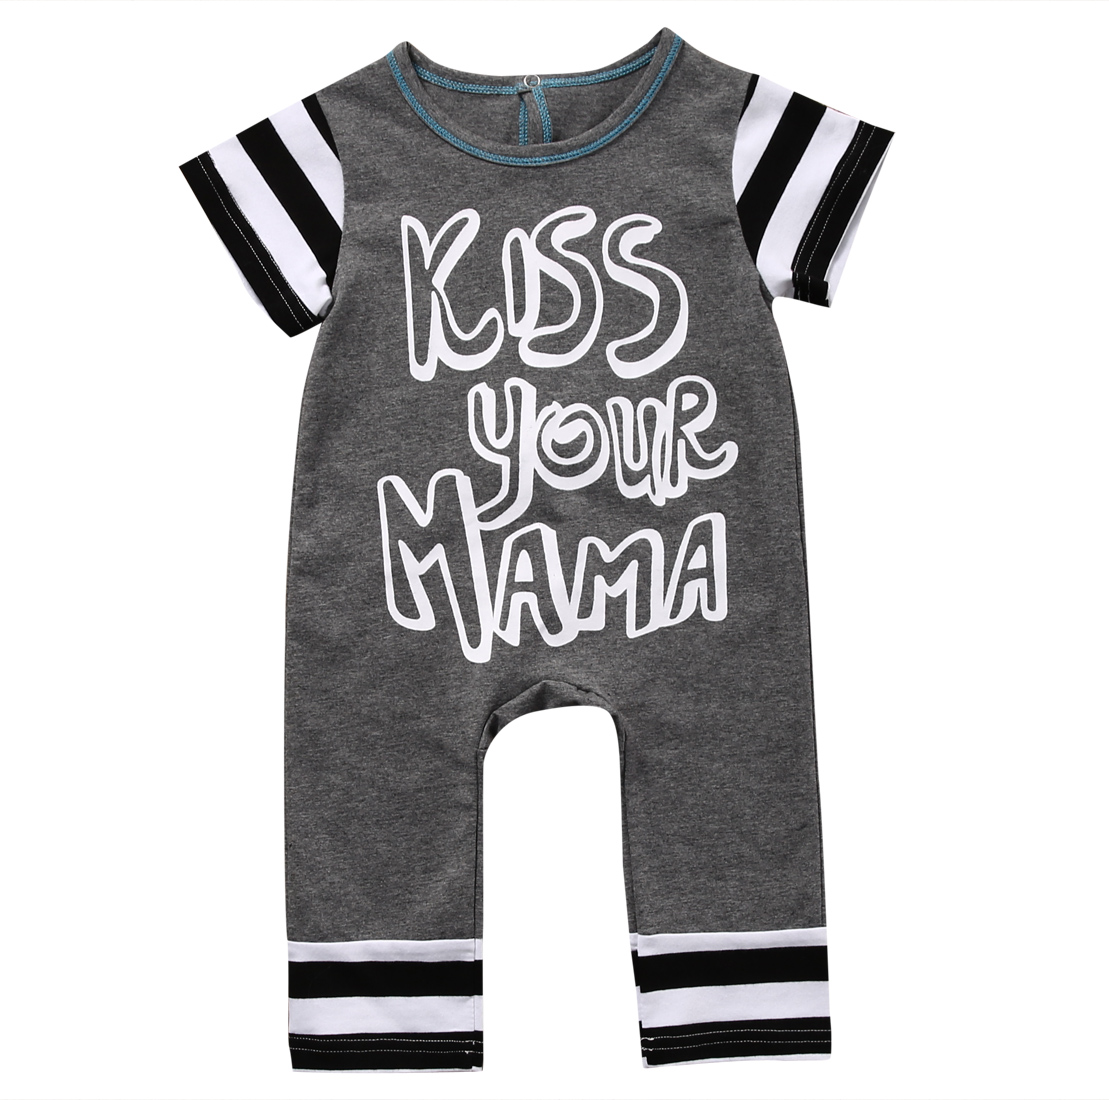 Kiss Your Mama Newborn Baby Romper 2017 Summer Short Sleeve Bebes Cotton Rompers Jumpsuit Outfit Toddler Kids Casual Suit 0-18M baby rompers baby clothing fashion summer cotton infant jumpsuit newborn long sleeve girl boys rompers costumes bebes romper